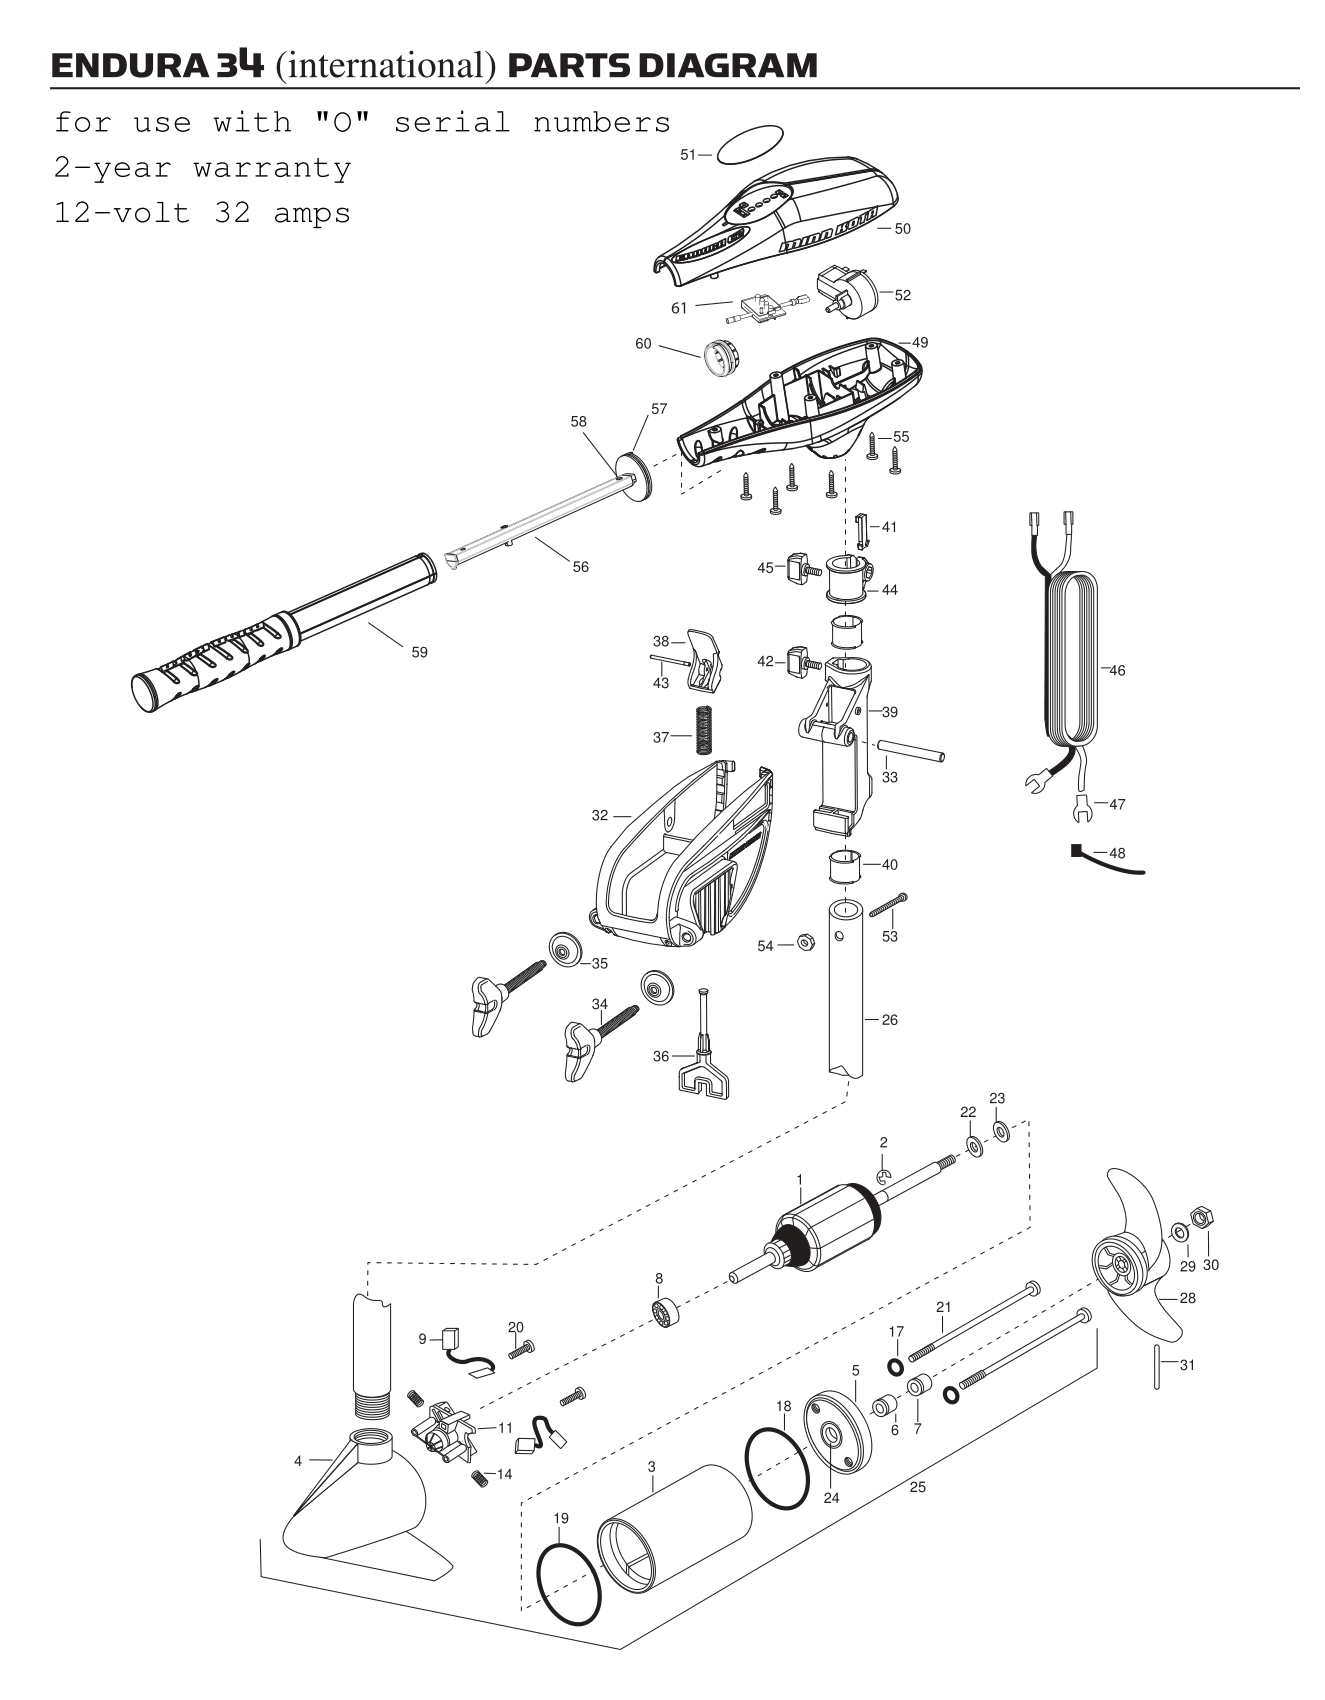 Minn Kota Endura Parts Diagram Just Another Wiring Blog Jewett C2 34 International 2014 From Fish307 Com Rh 40 55